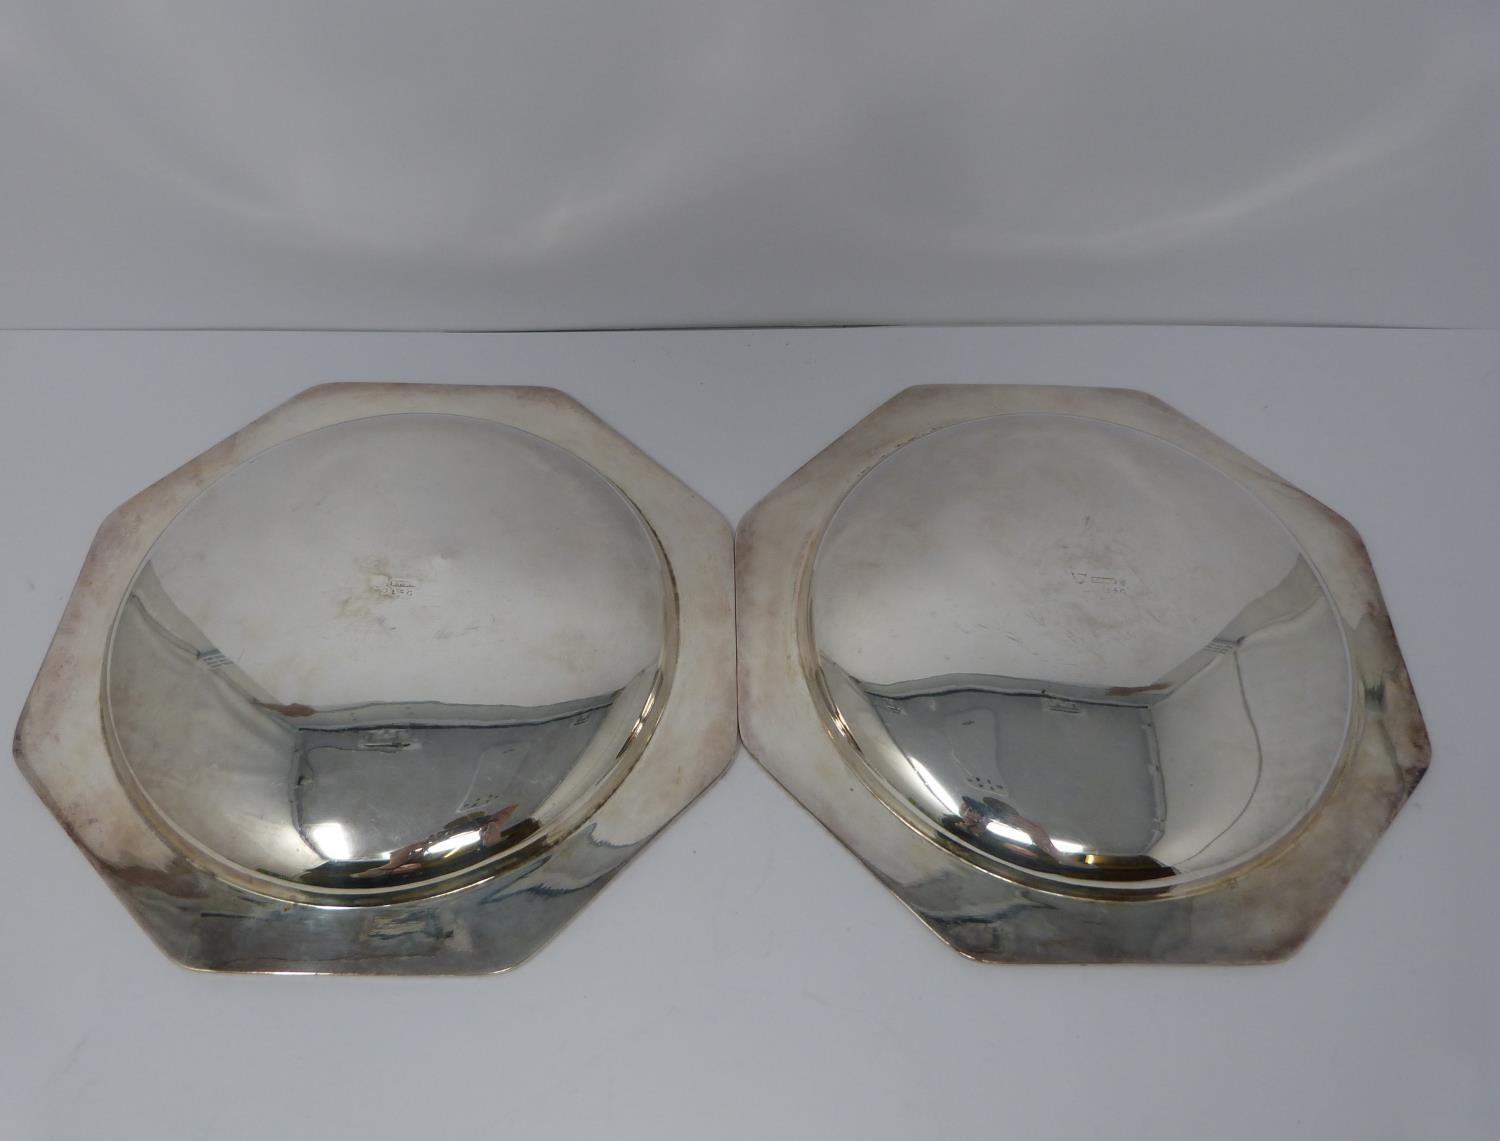 A silver plated cake stand, handled basket and two tankards, basket stamped EPNS, 13694, flower form - Image 8 of 12